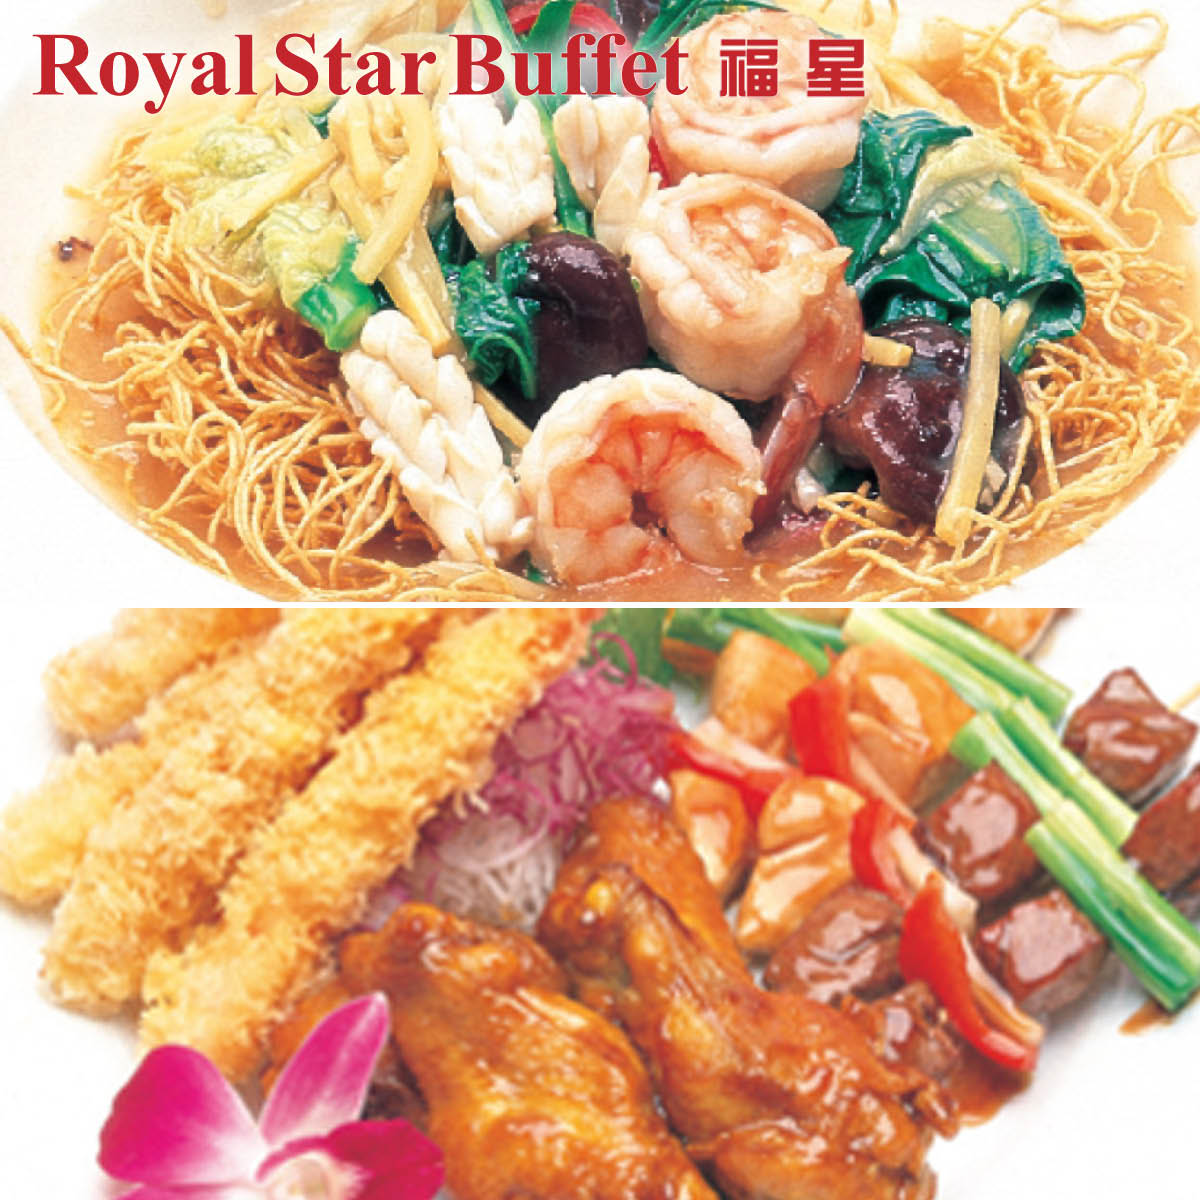 Royal Star Buffet logo over-layered on pictures of authentic Chinese noodle dishes, stir fry, kabobs and tempera located in Mount Vernon.